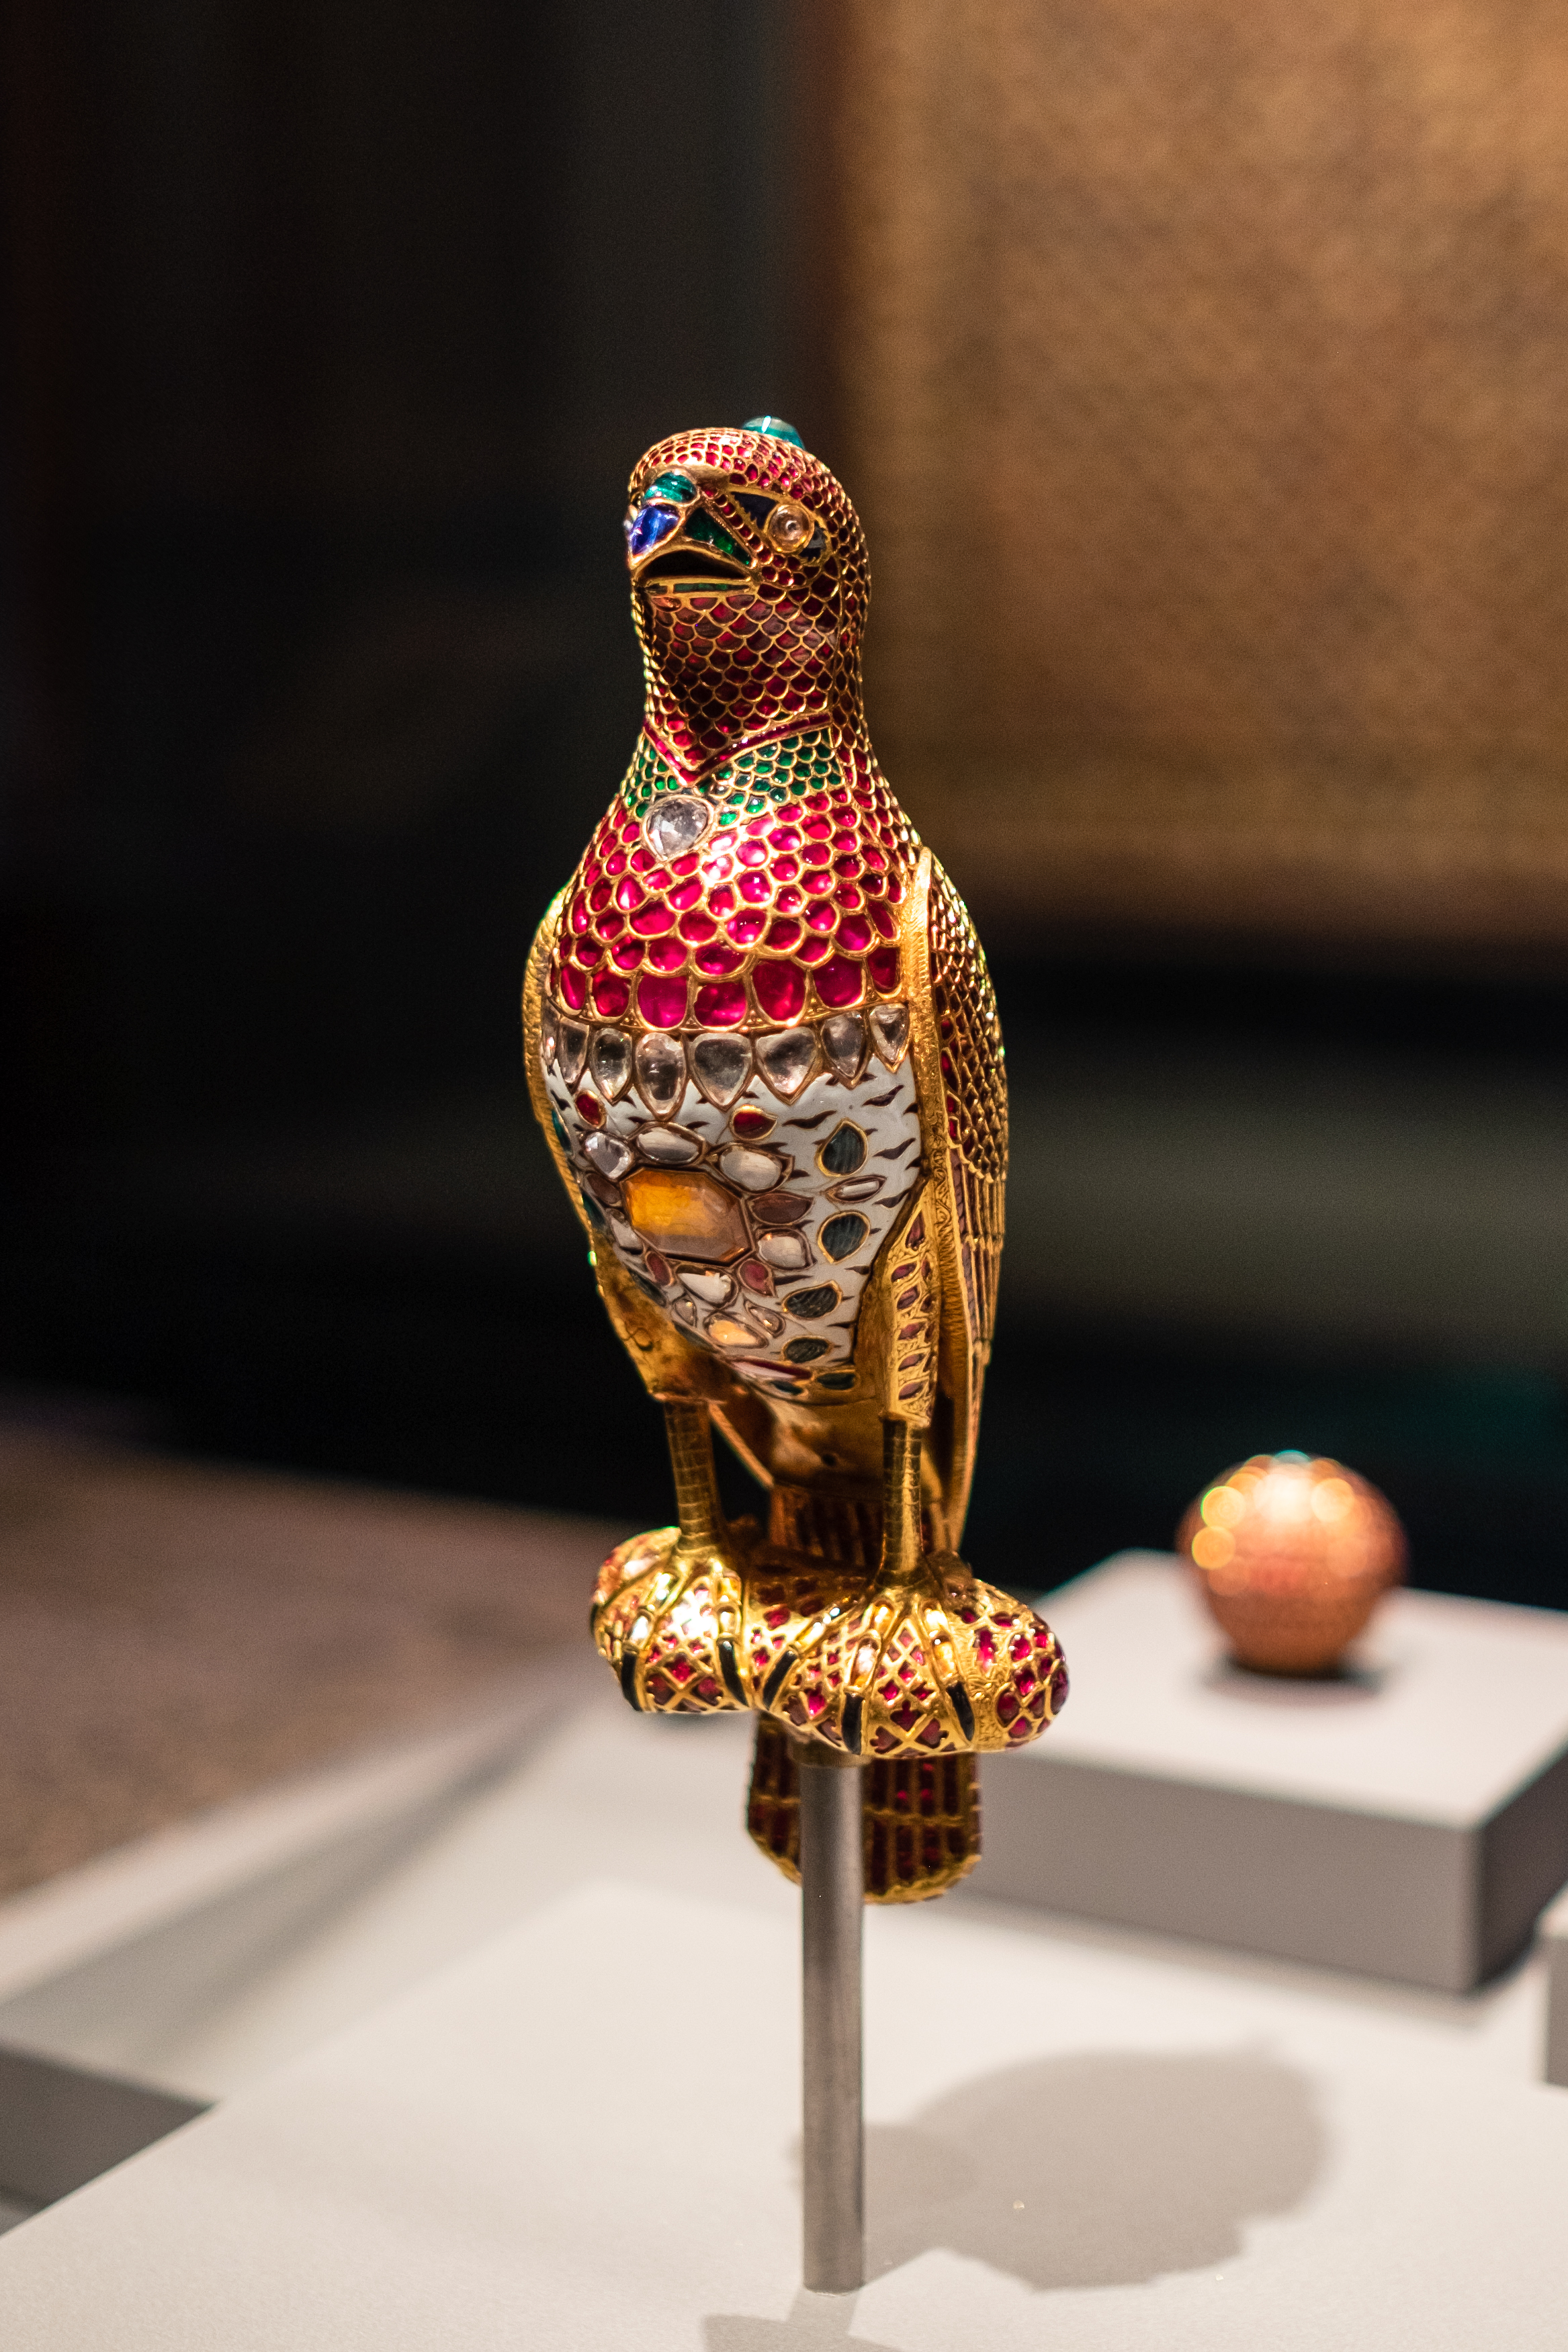 A Jeweled Falcon created with Gold, rubies, emeralds, diamonds, sapphires, and onyx. Insane!